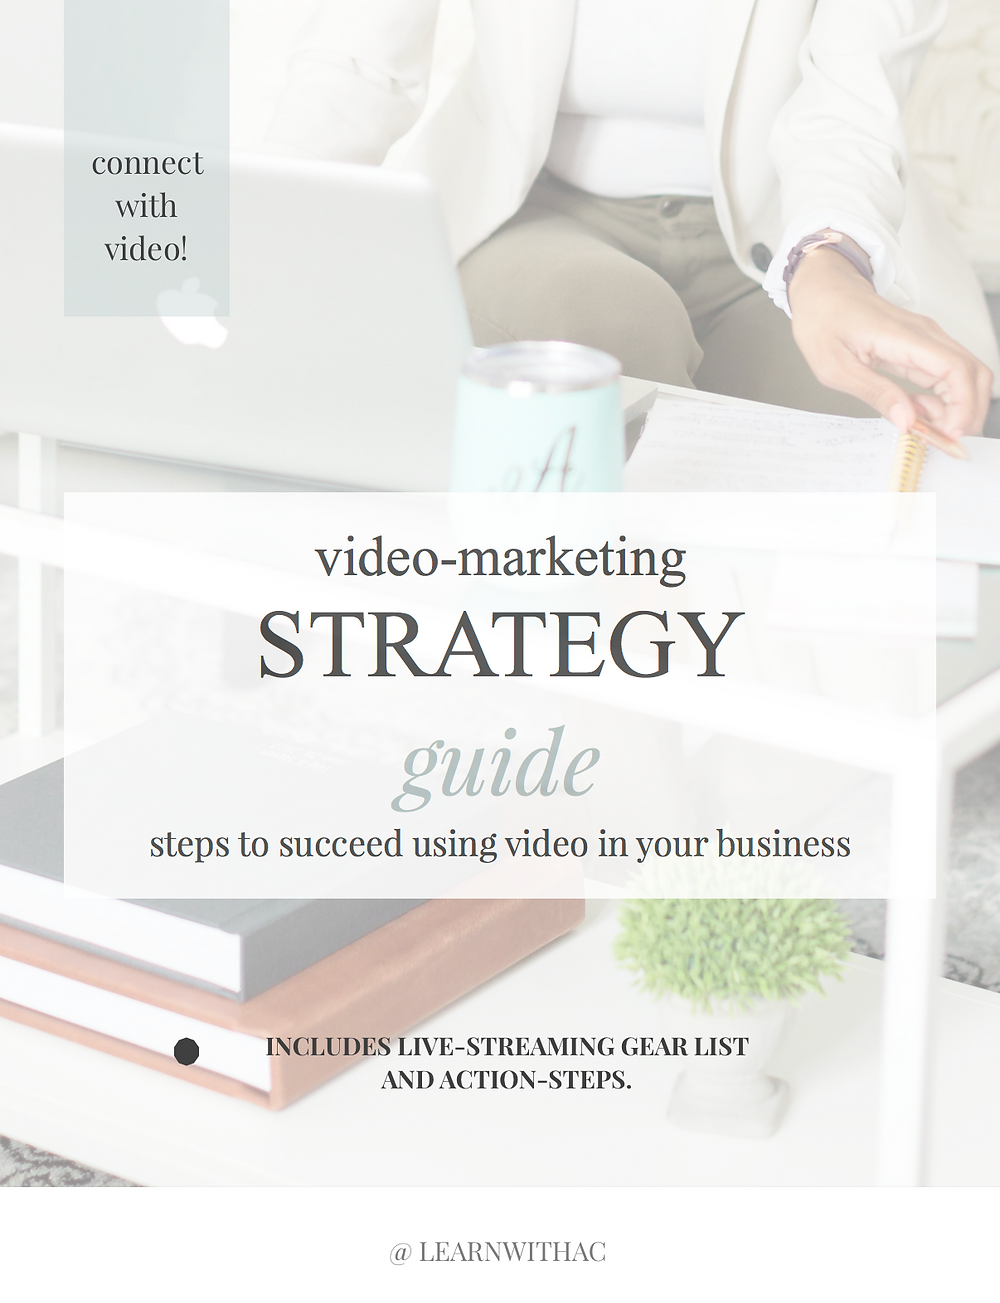 LEARNWITHAC 2019 Video-Marketing Strategy Guide